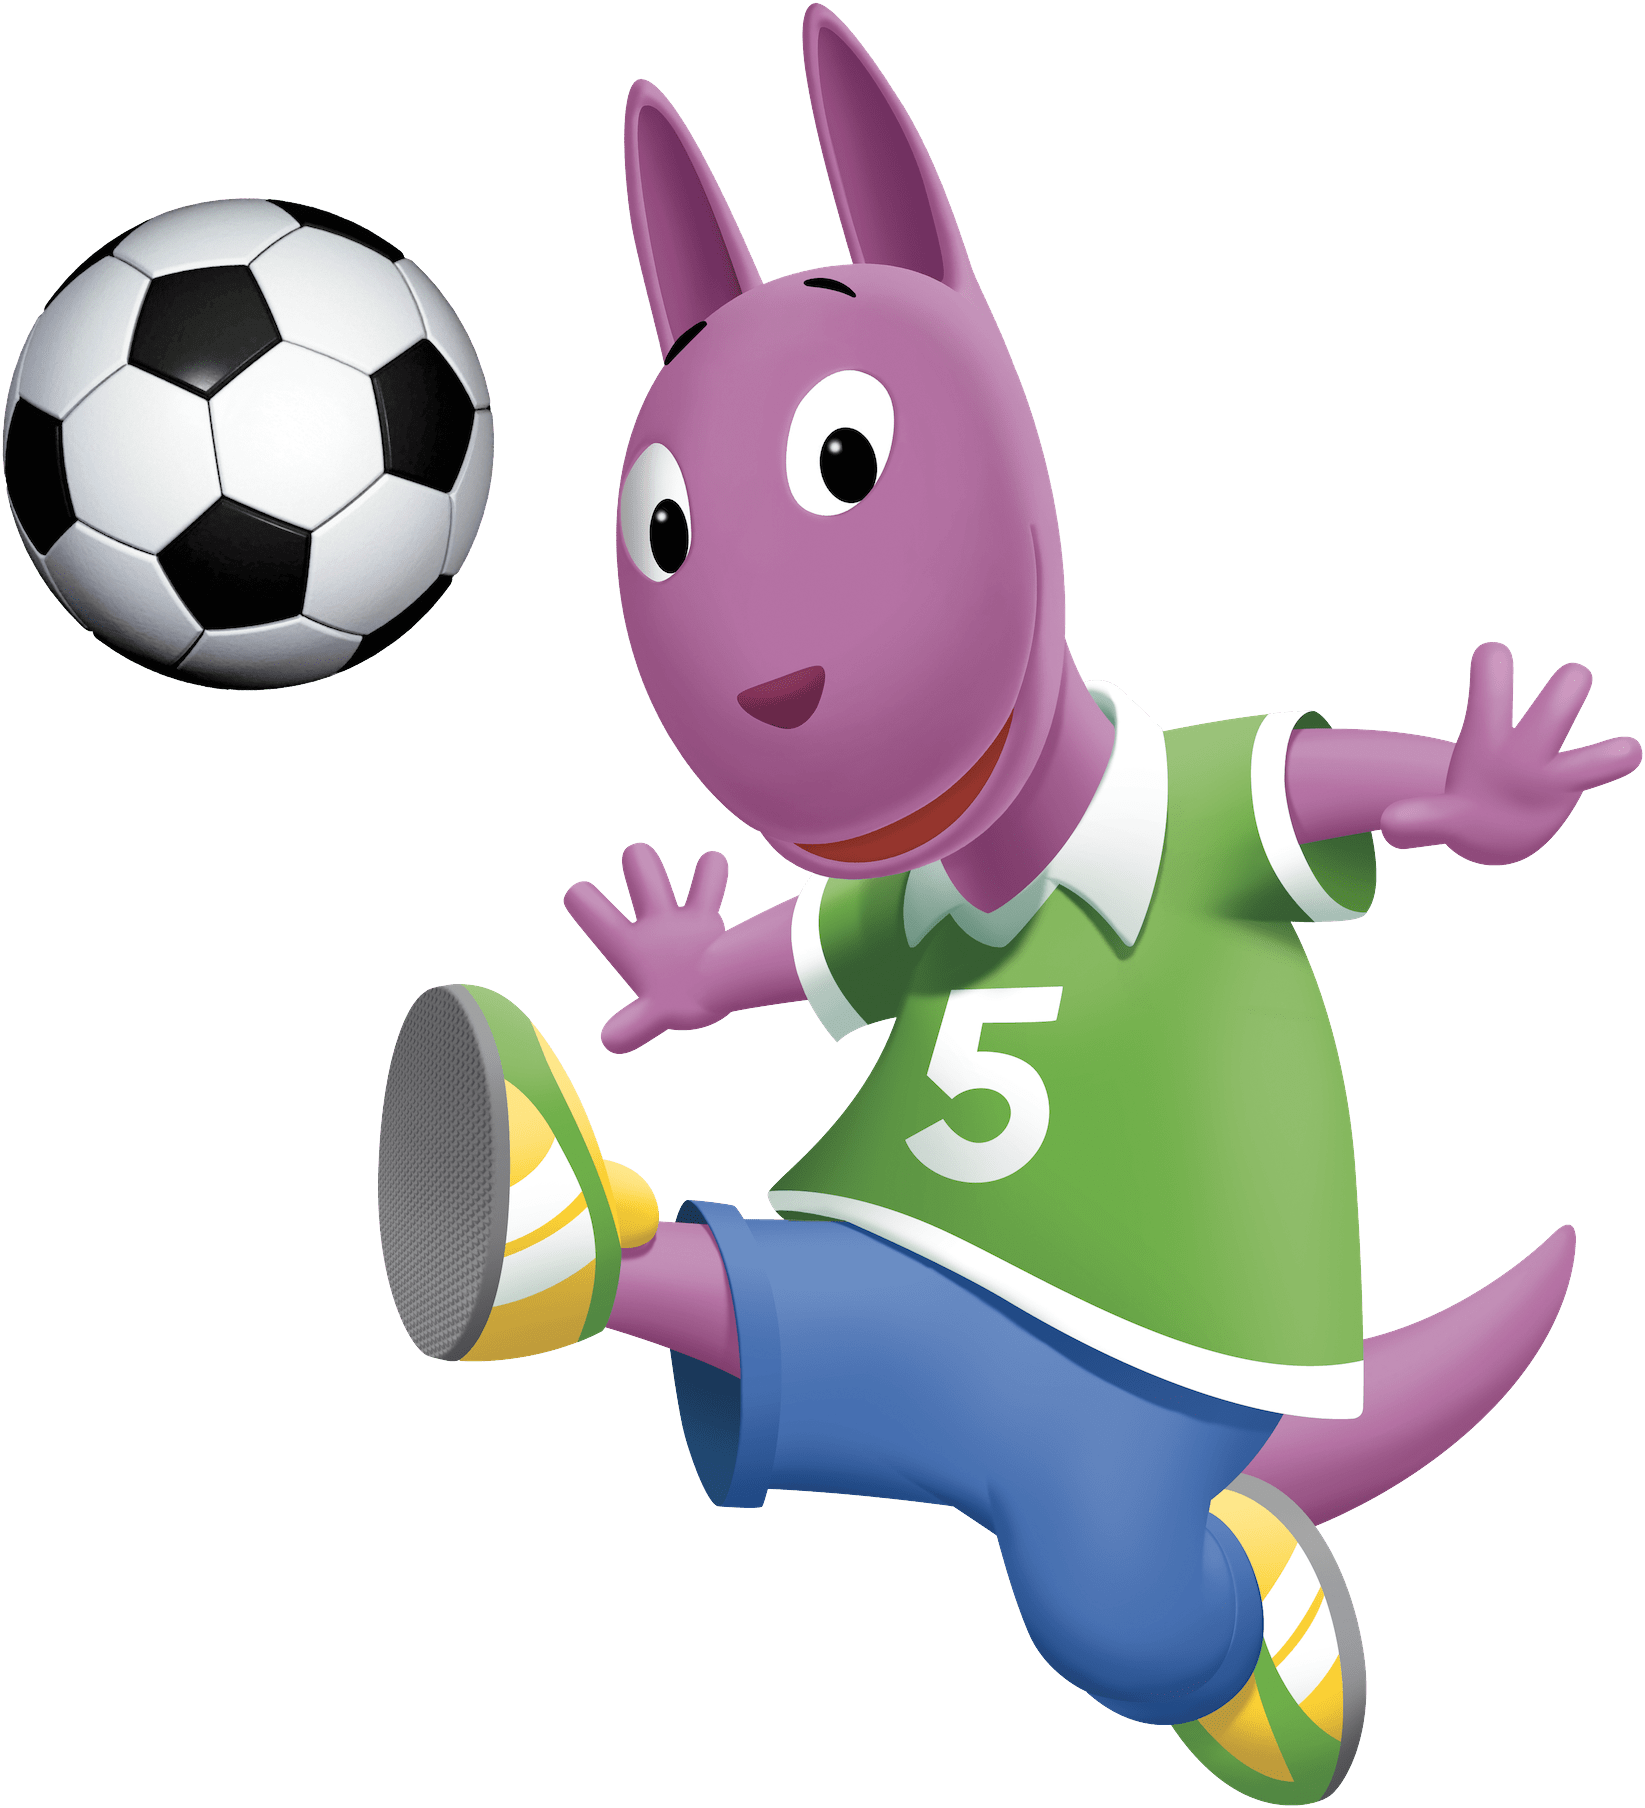 Friends playing football clipart graphic royalty free download Austin Playing Football transparent PNG - StickPNG graphic royalty free download